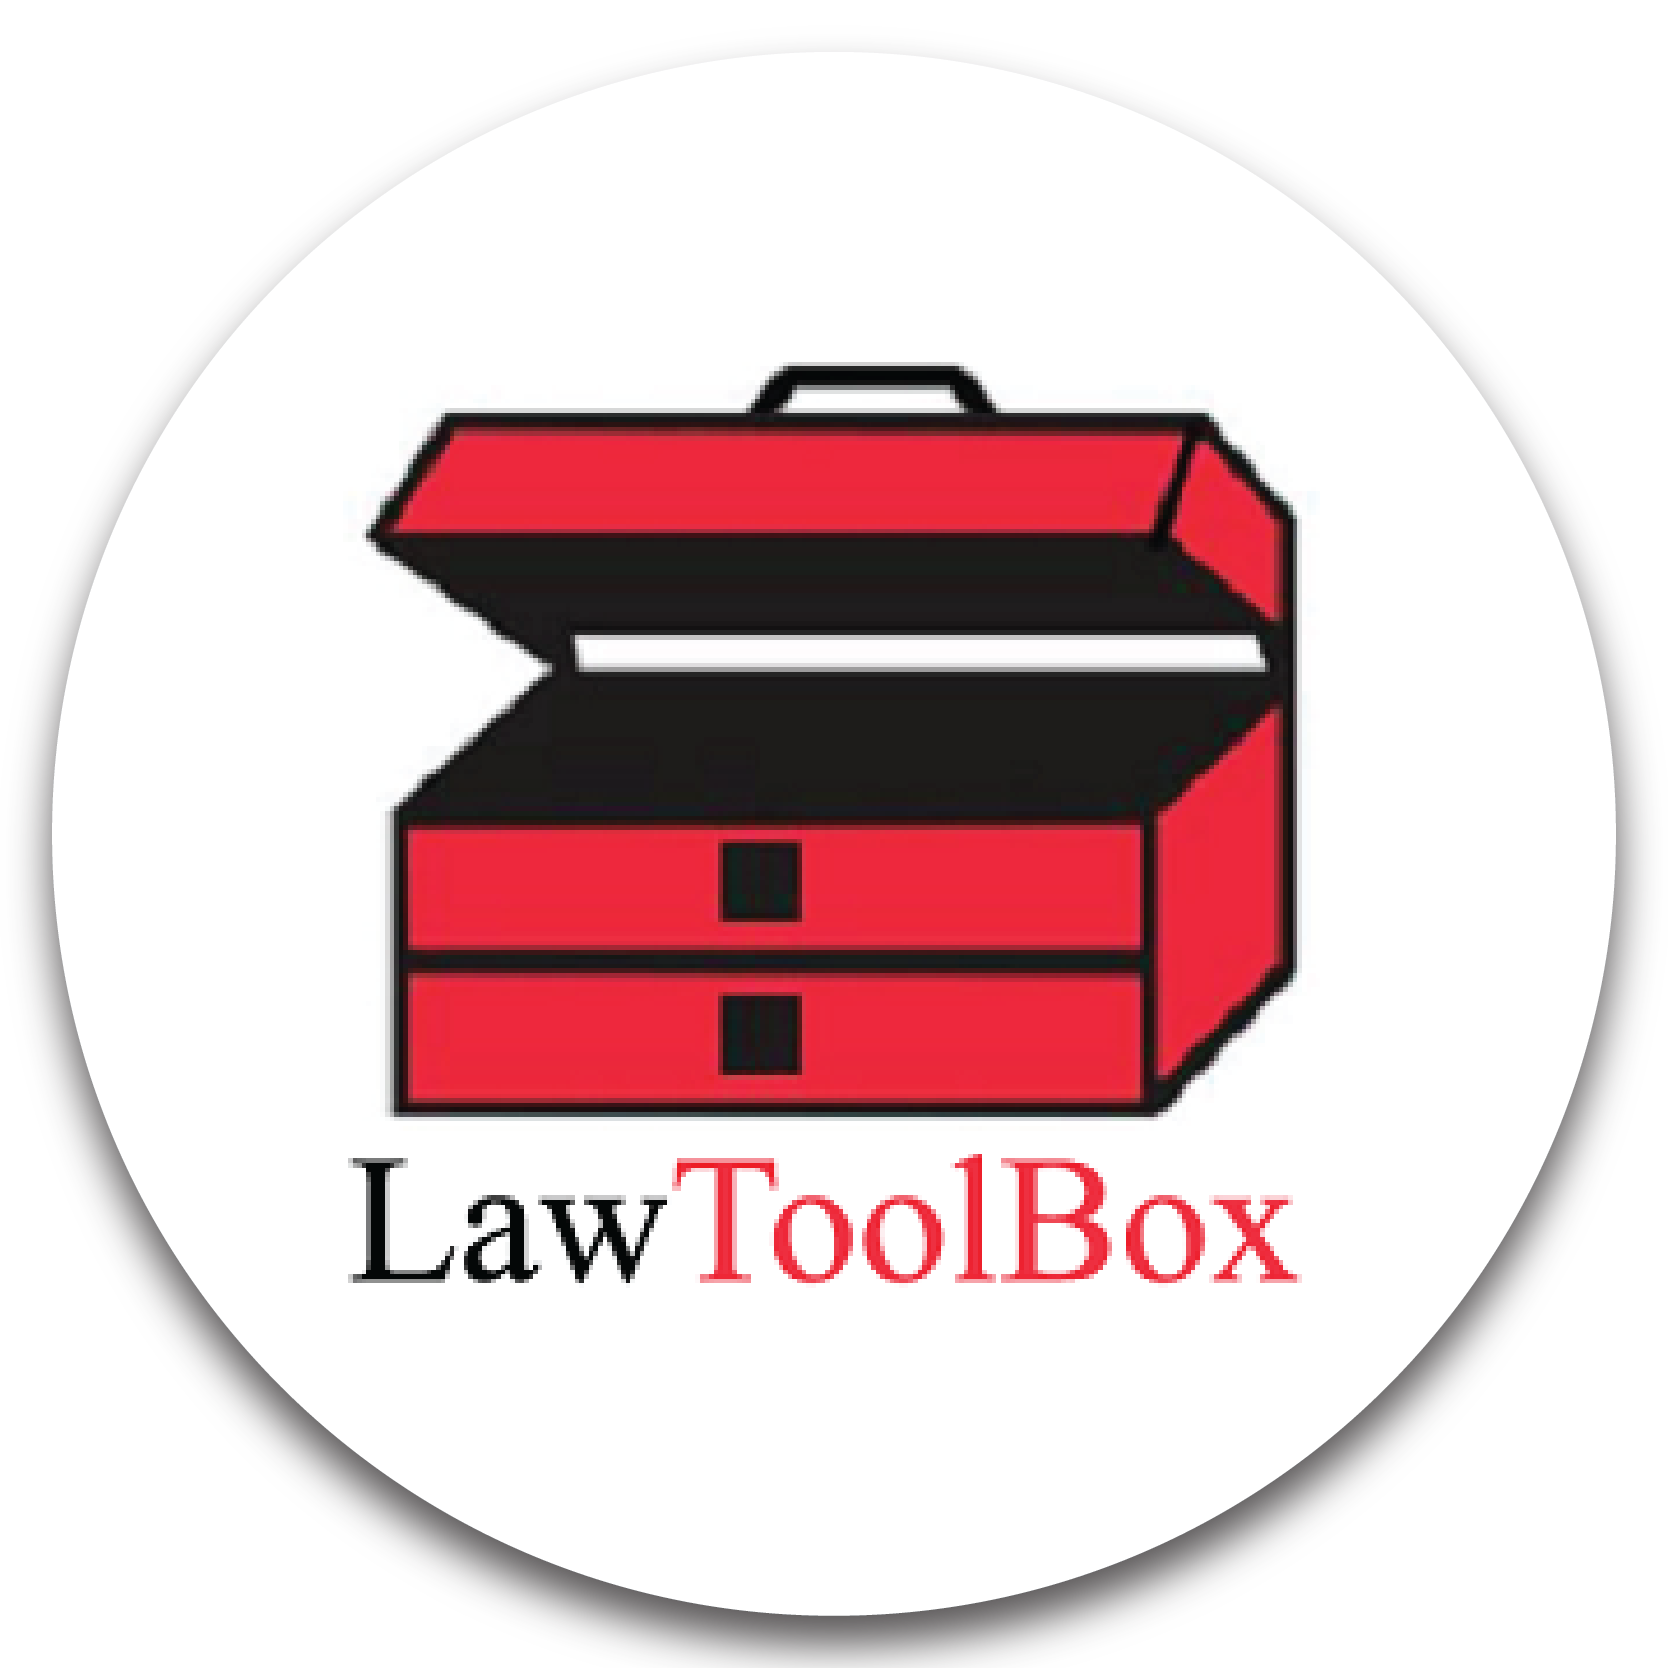 LawToolBox Logo. Click to go to LawToolBox website.